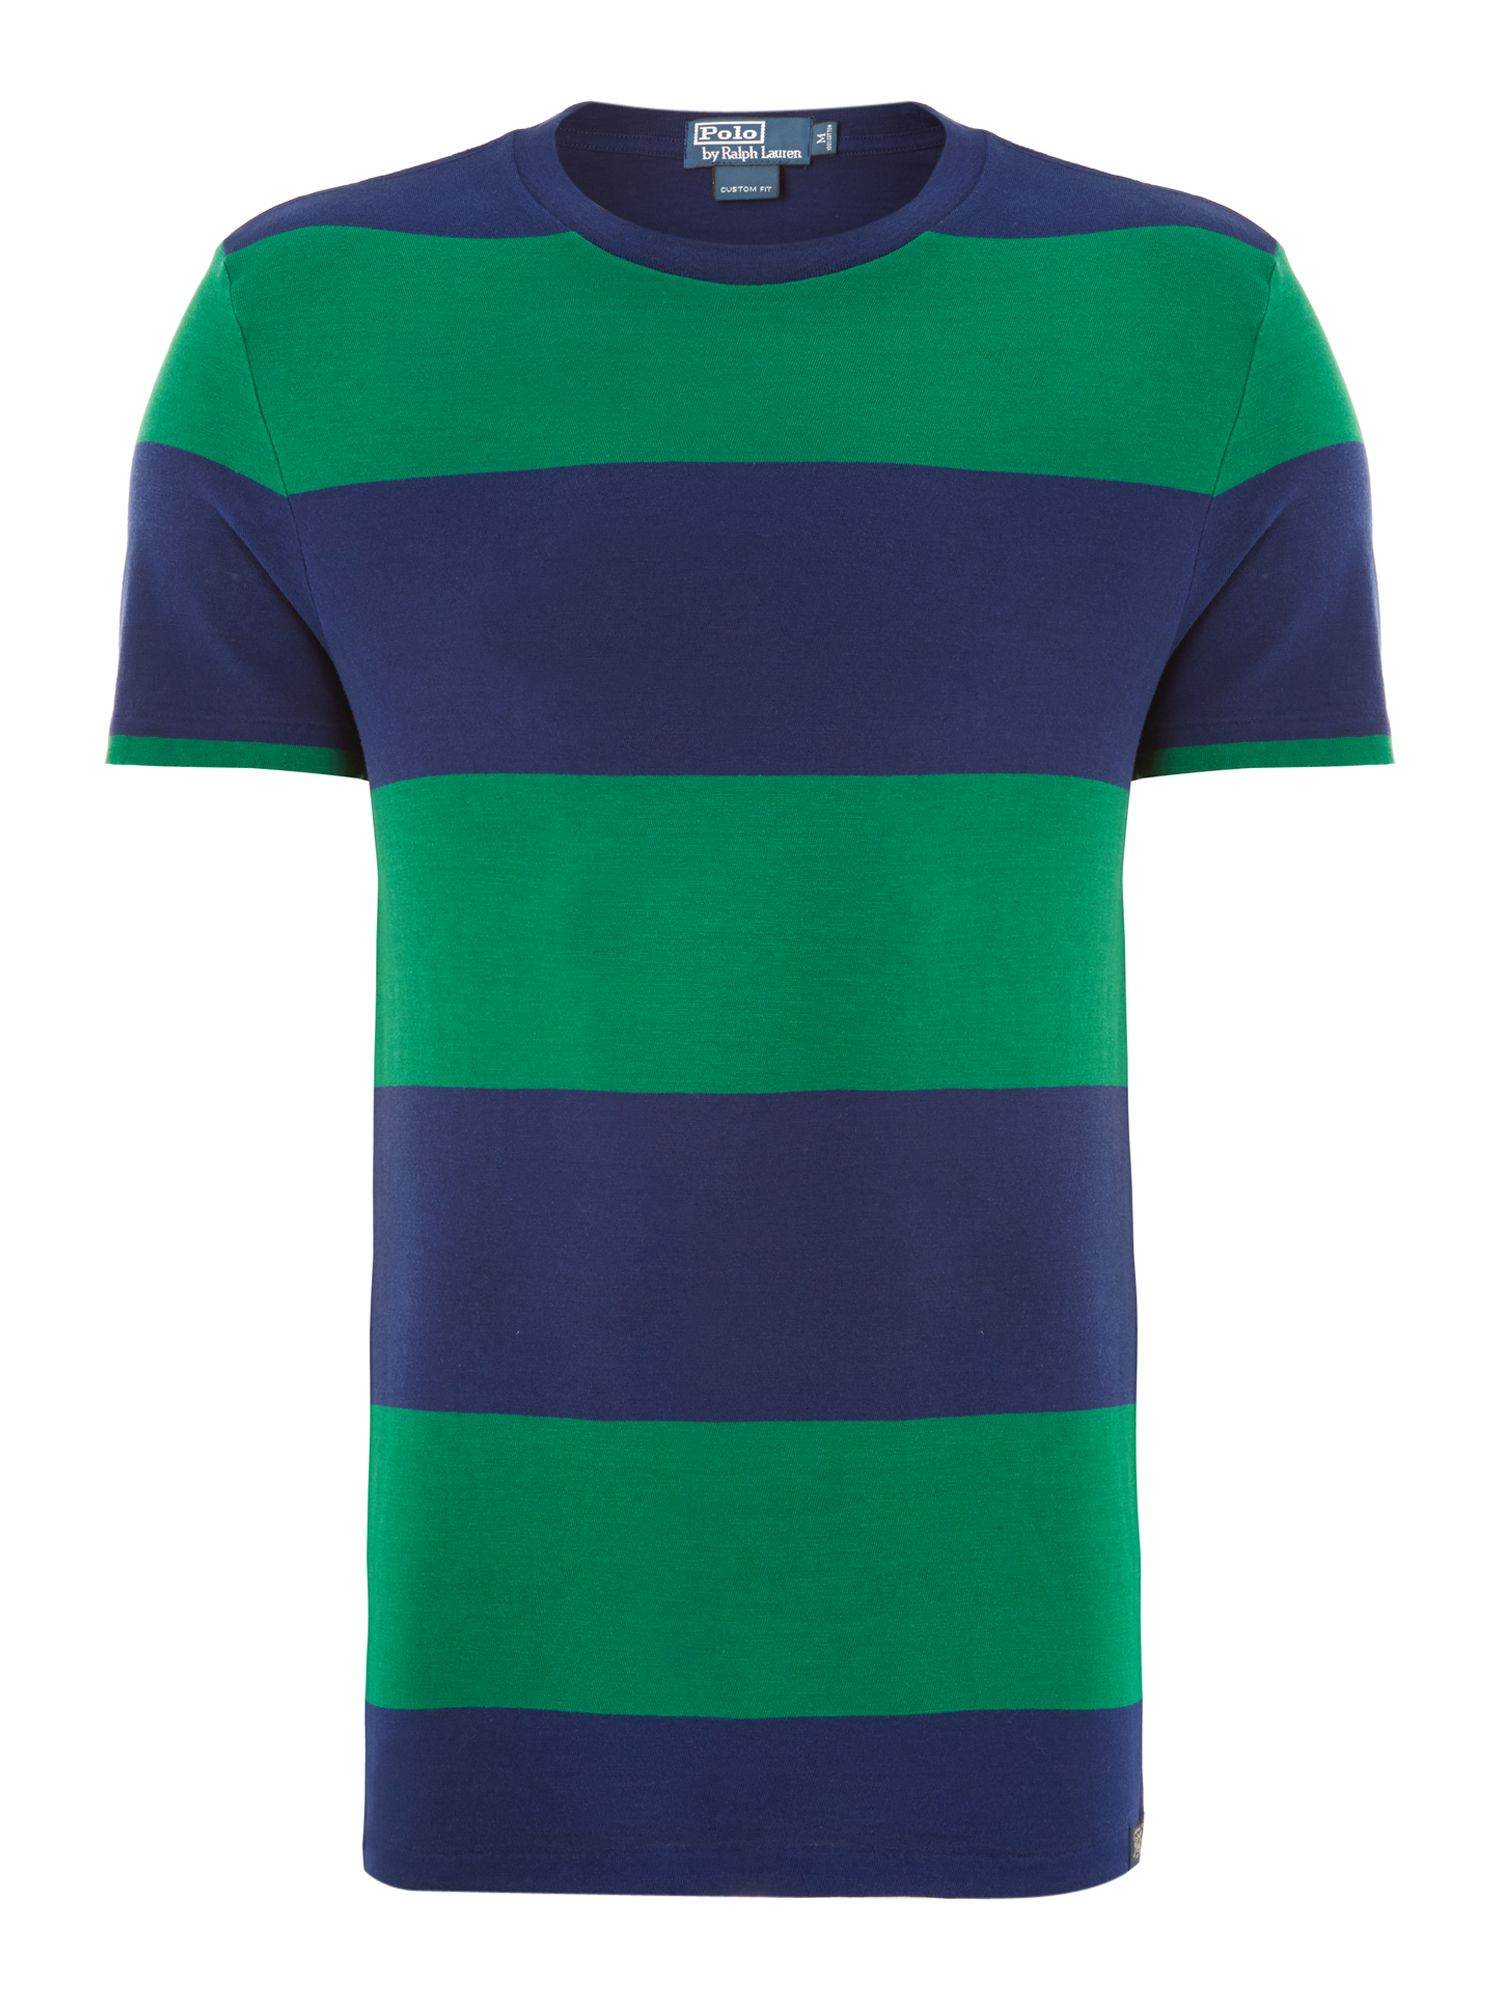 Block striped crew neck t-shirt